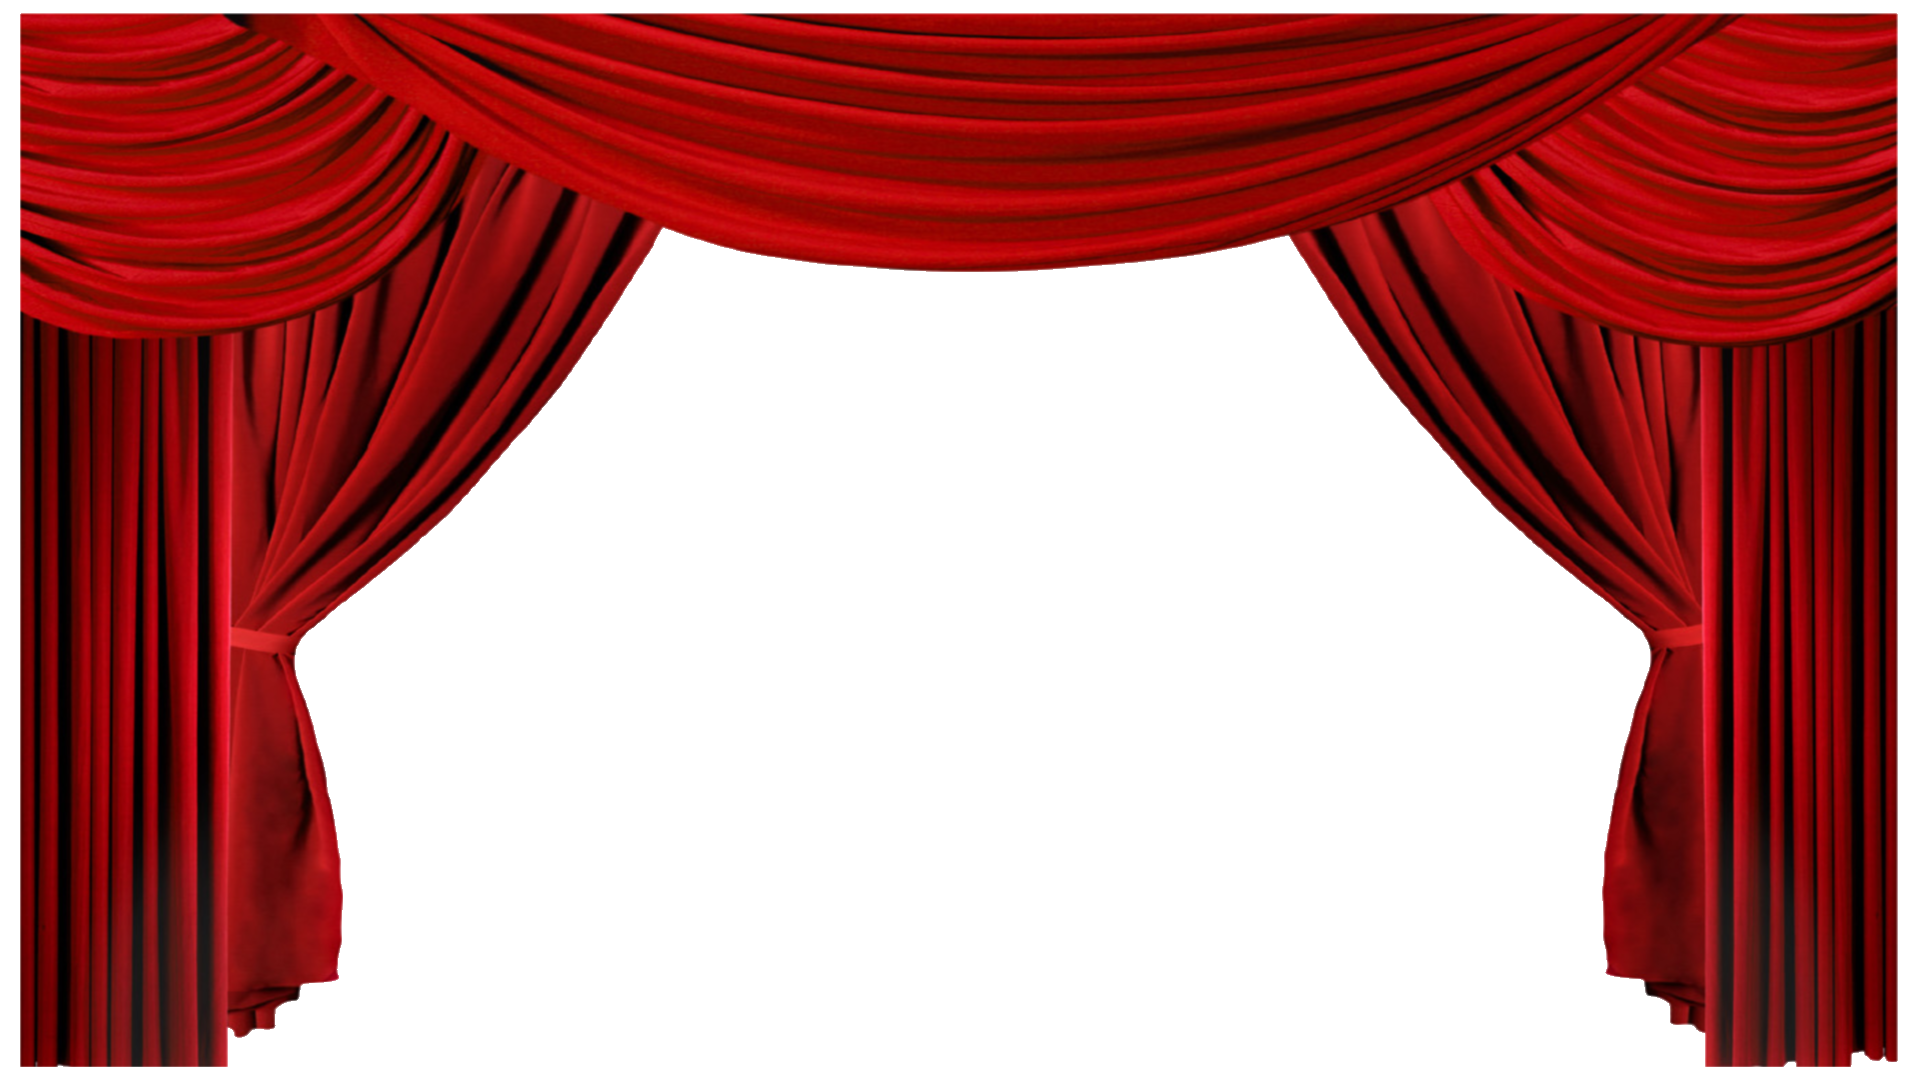 Theater curtains png best 2017